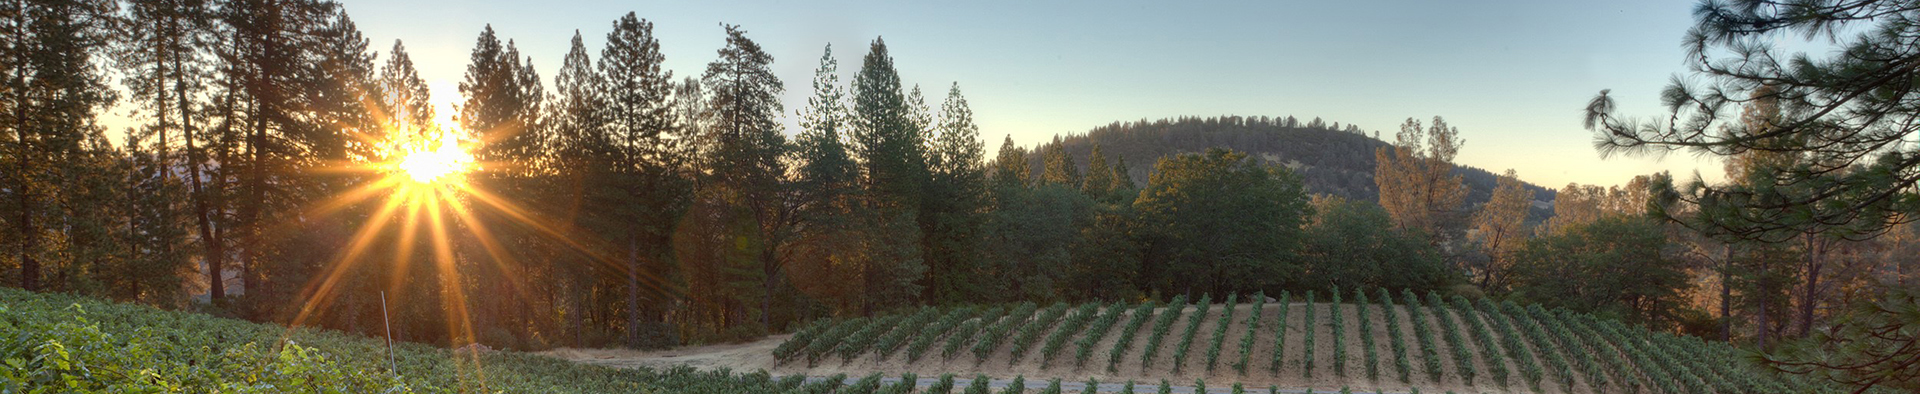 Horseback Vineyard Sunset Courtesy Hawk and Horse 1920x394